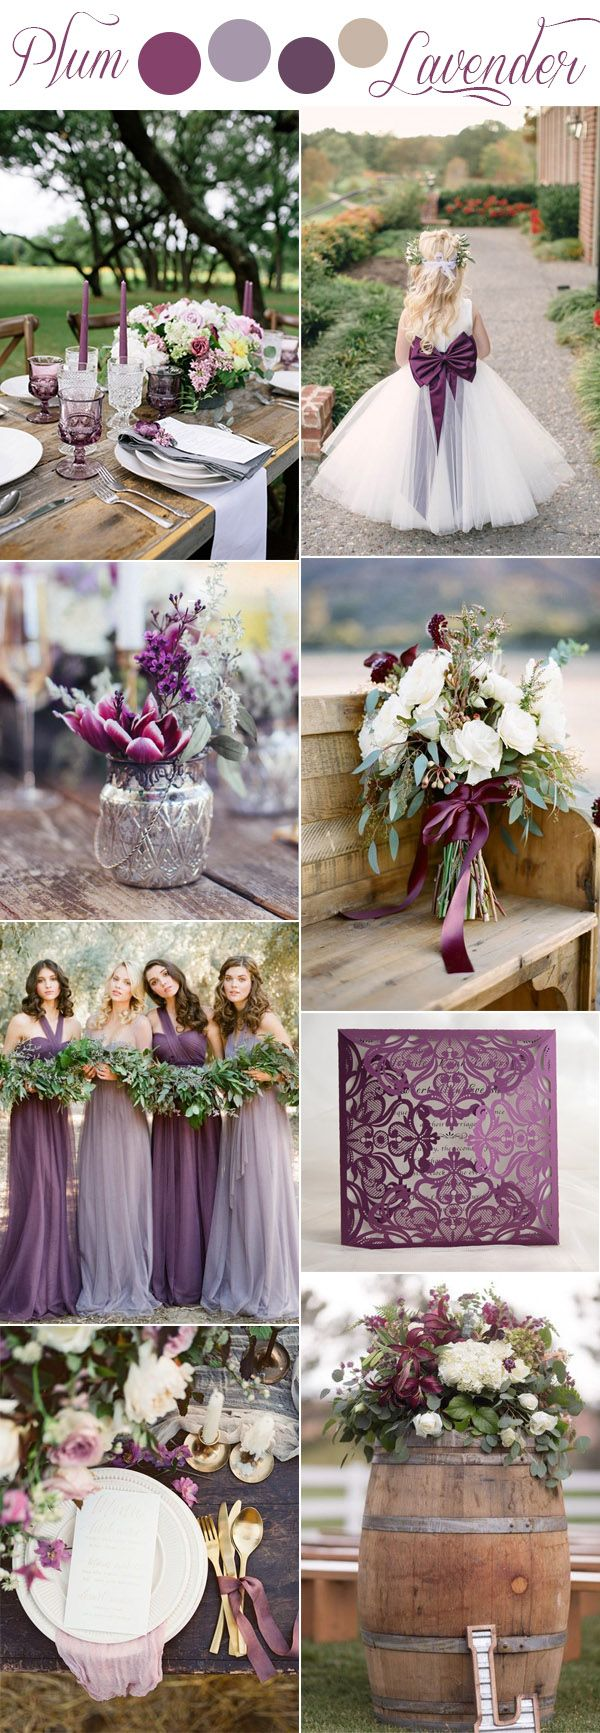 Plum Lavender And Lilac Shades Of Purple Romantic Rustic Wedding Color Ideas